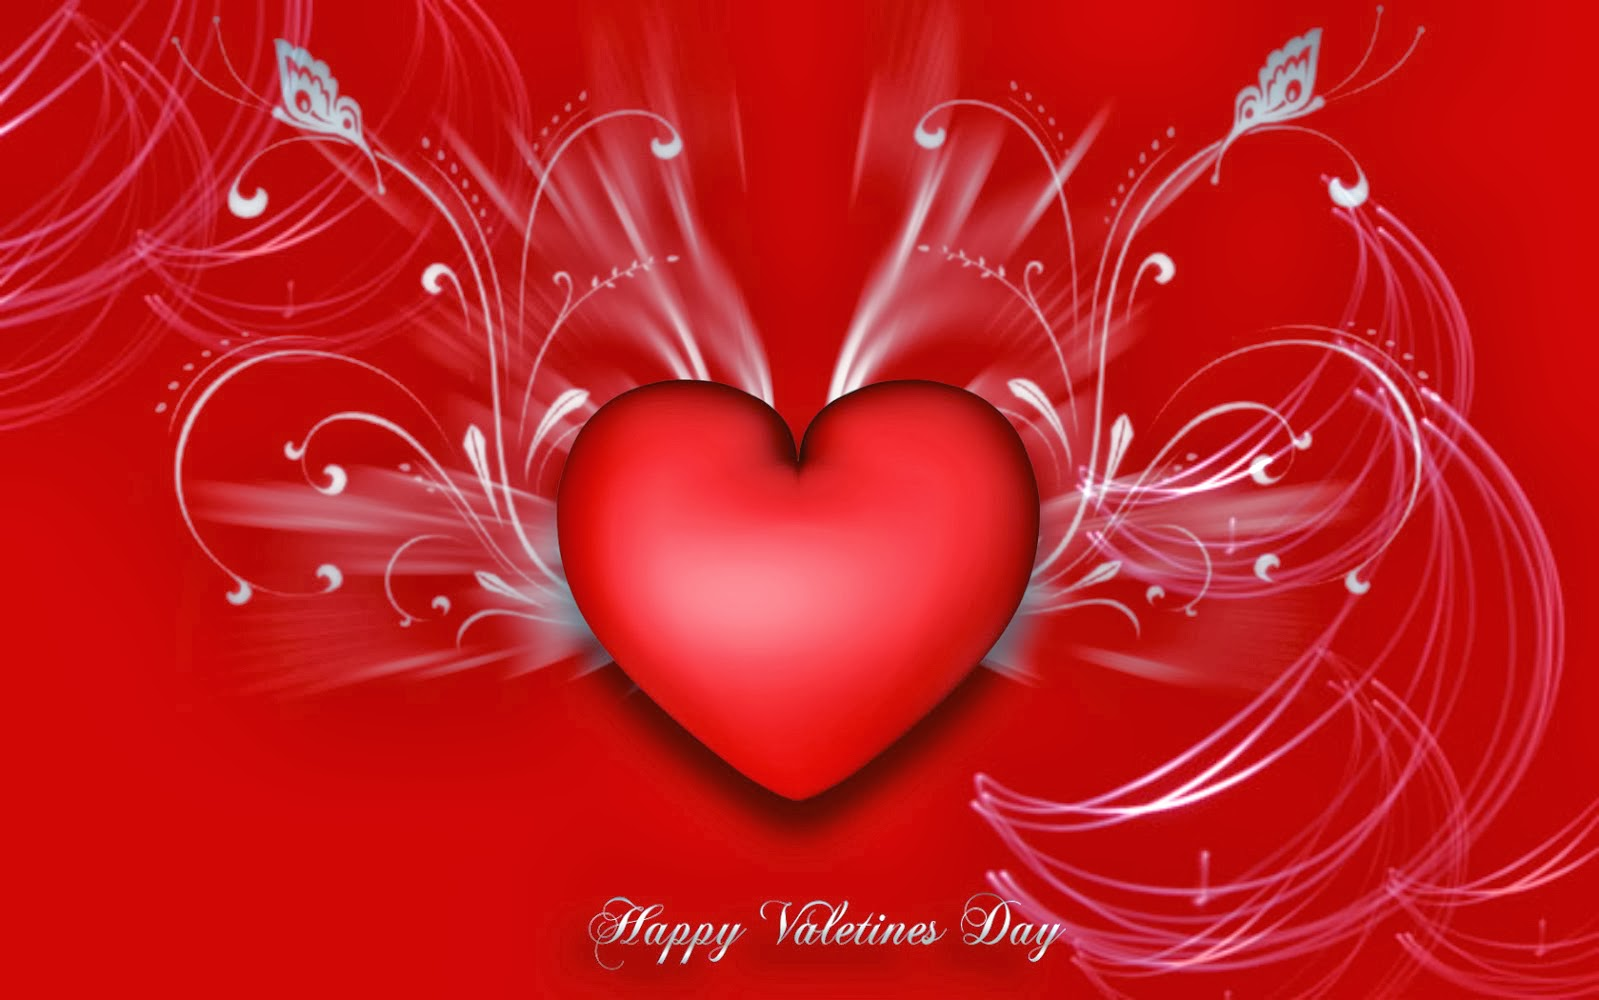 Love Greeting Hd Wallpaper : Being Valentine: Best Valentines day 2014 cards collection Valentines pictures free Download